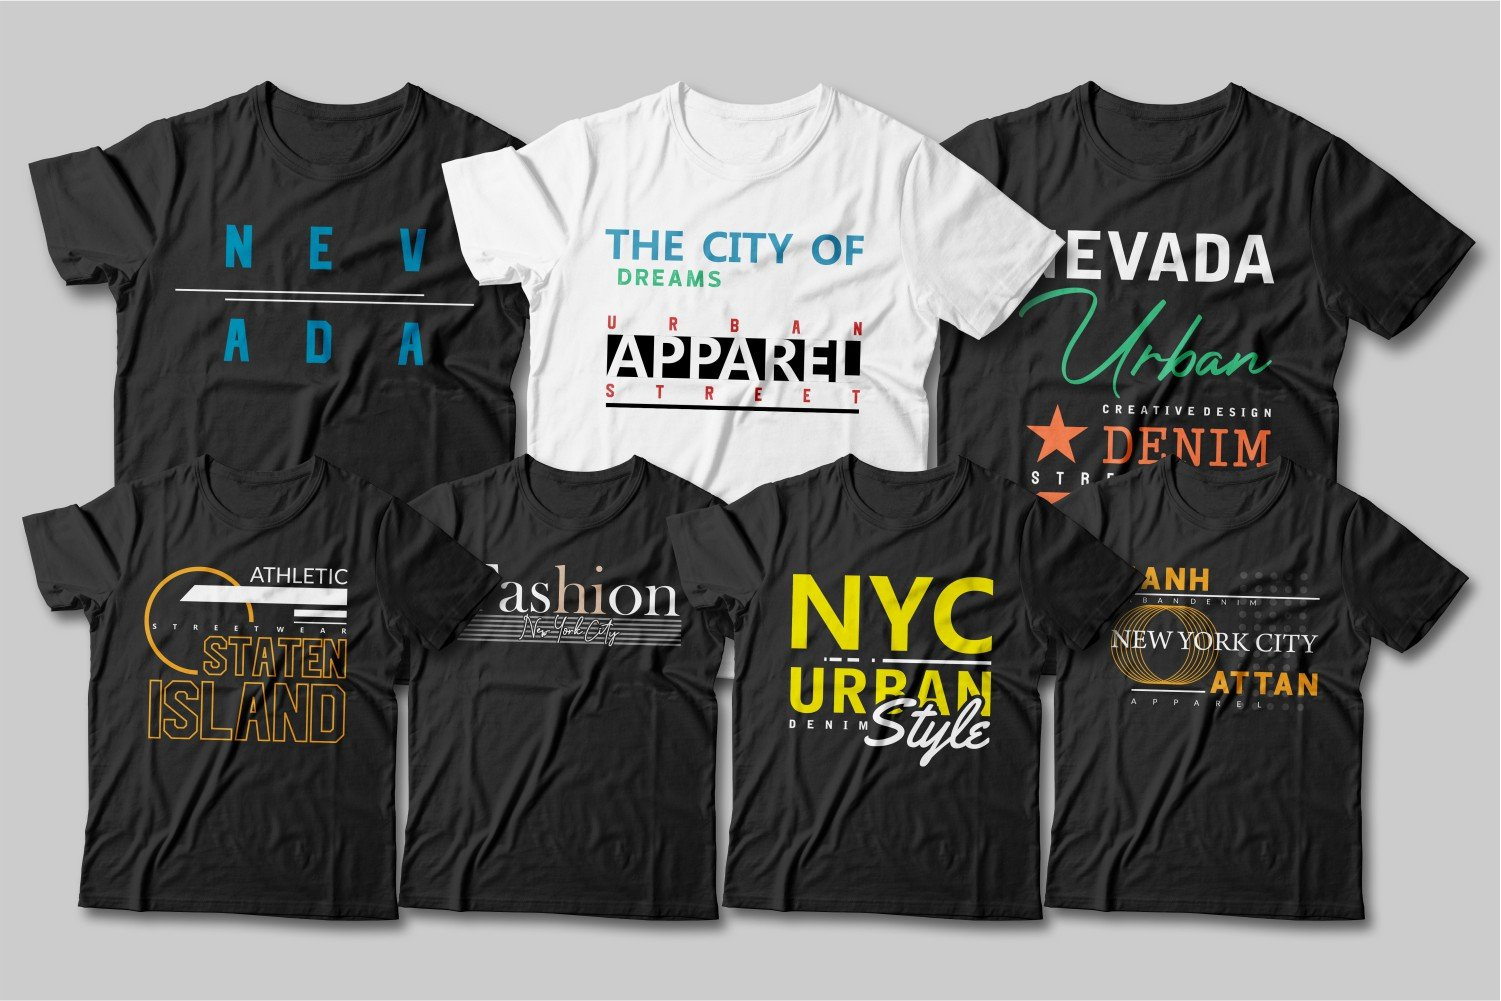 A bunch of black T-shirts and one white one. Urban Street Style T-shirt Designs.